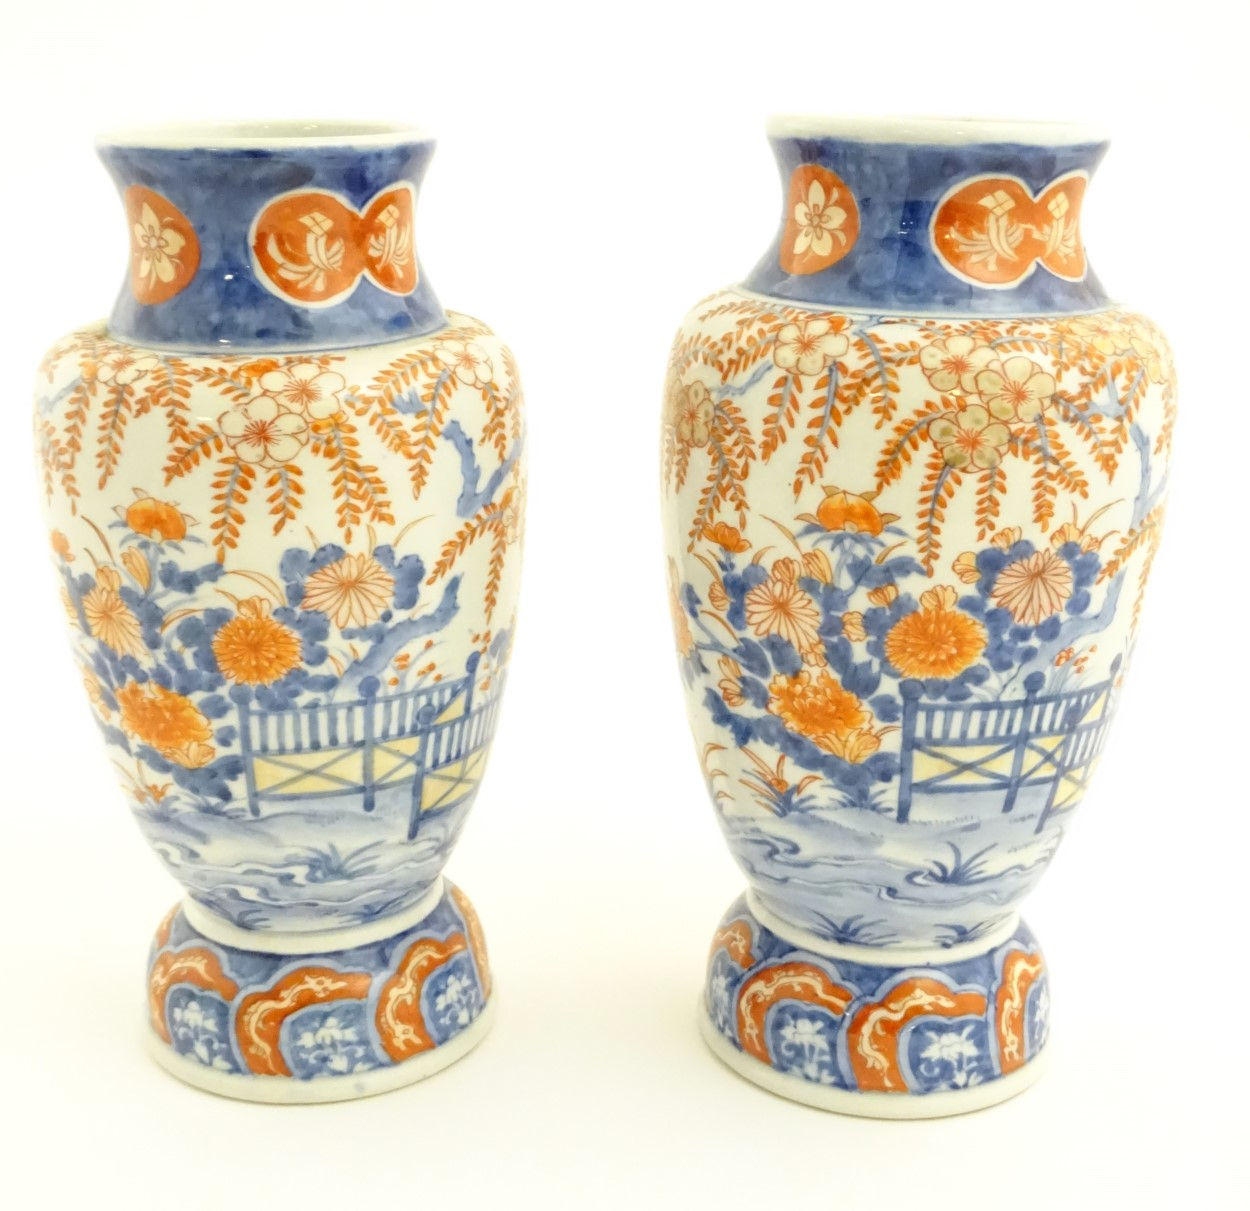 """Lot 24 - Two Imari vases depicting a garden landscape. Approx. 12"""" high."""